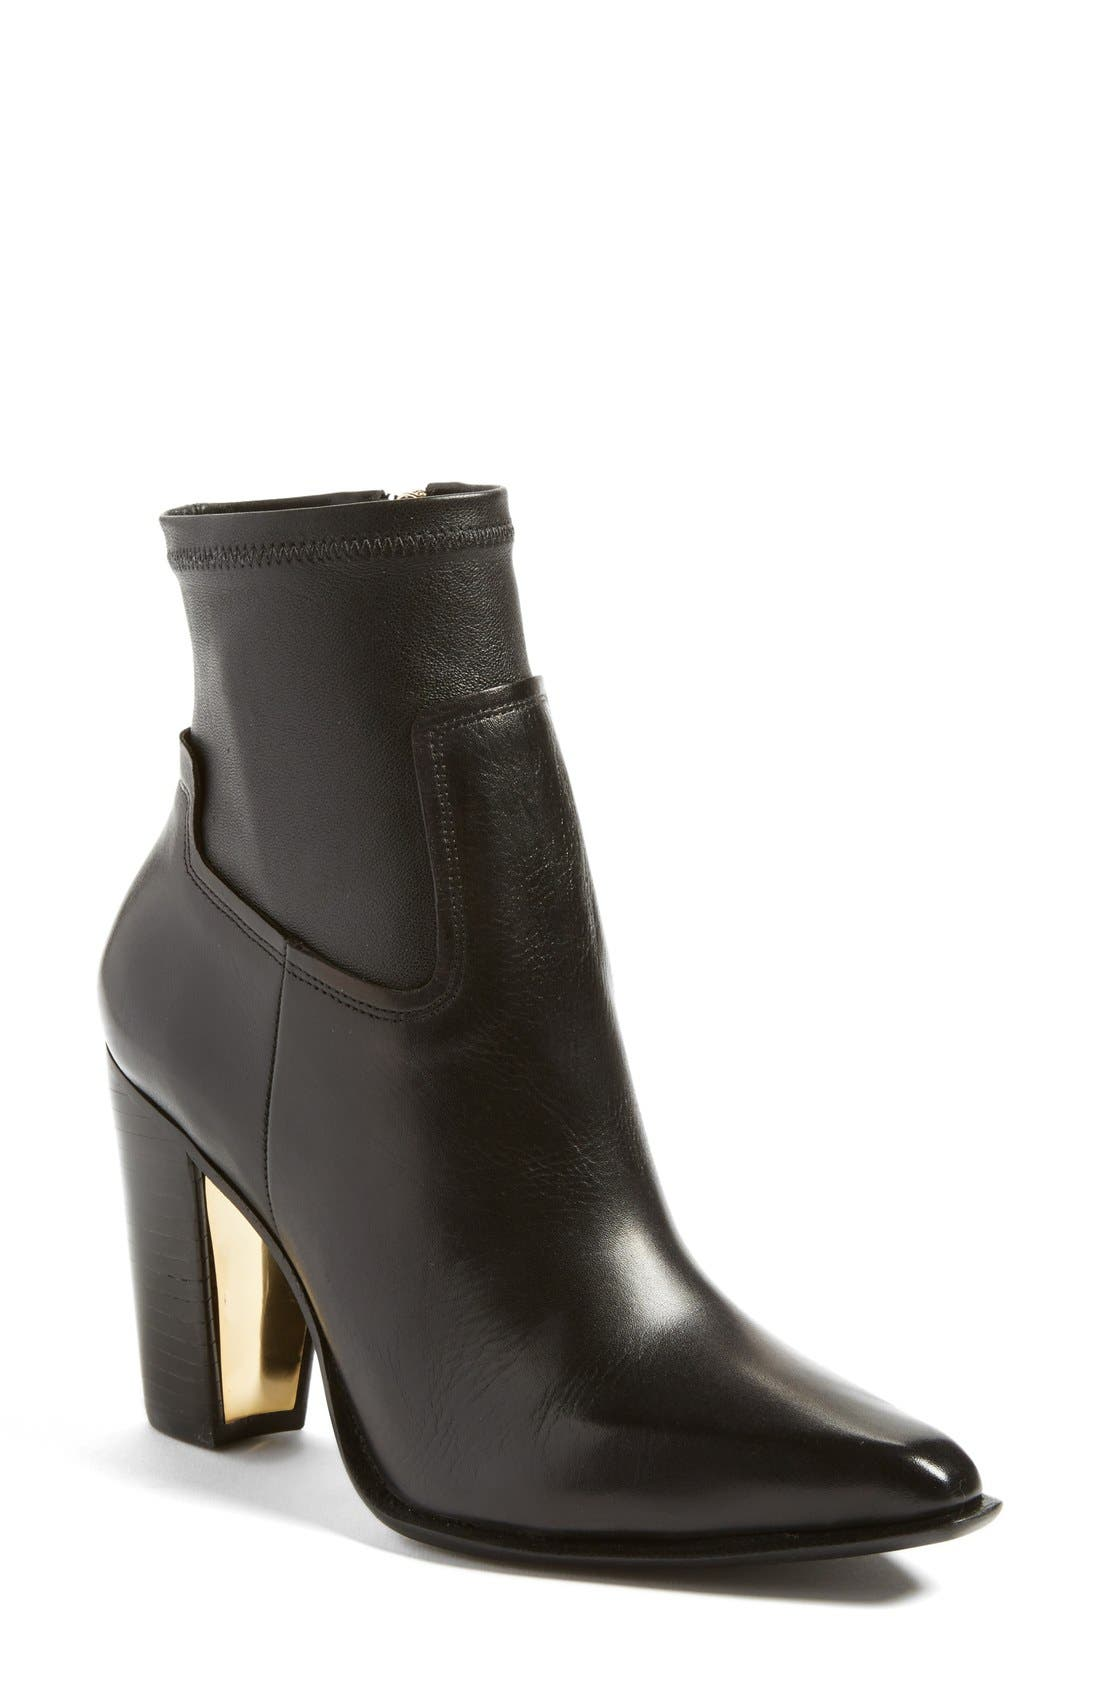 Alternate Image 1 Selected - Rachel Zoe 'Bestie' Pointy Toe Bootie (Women)